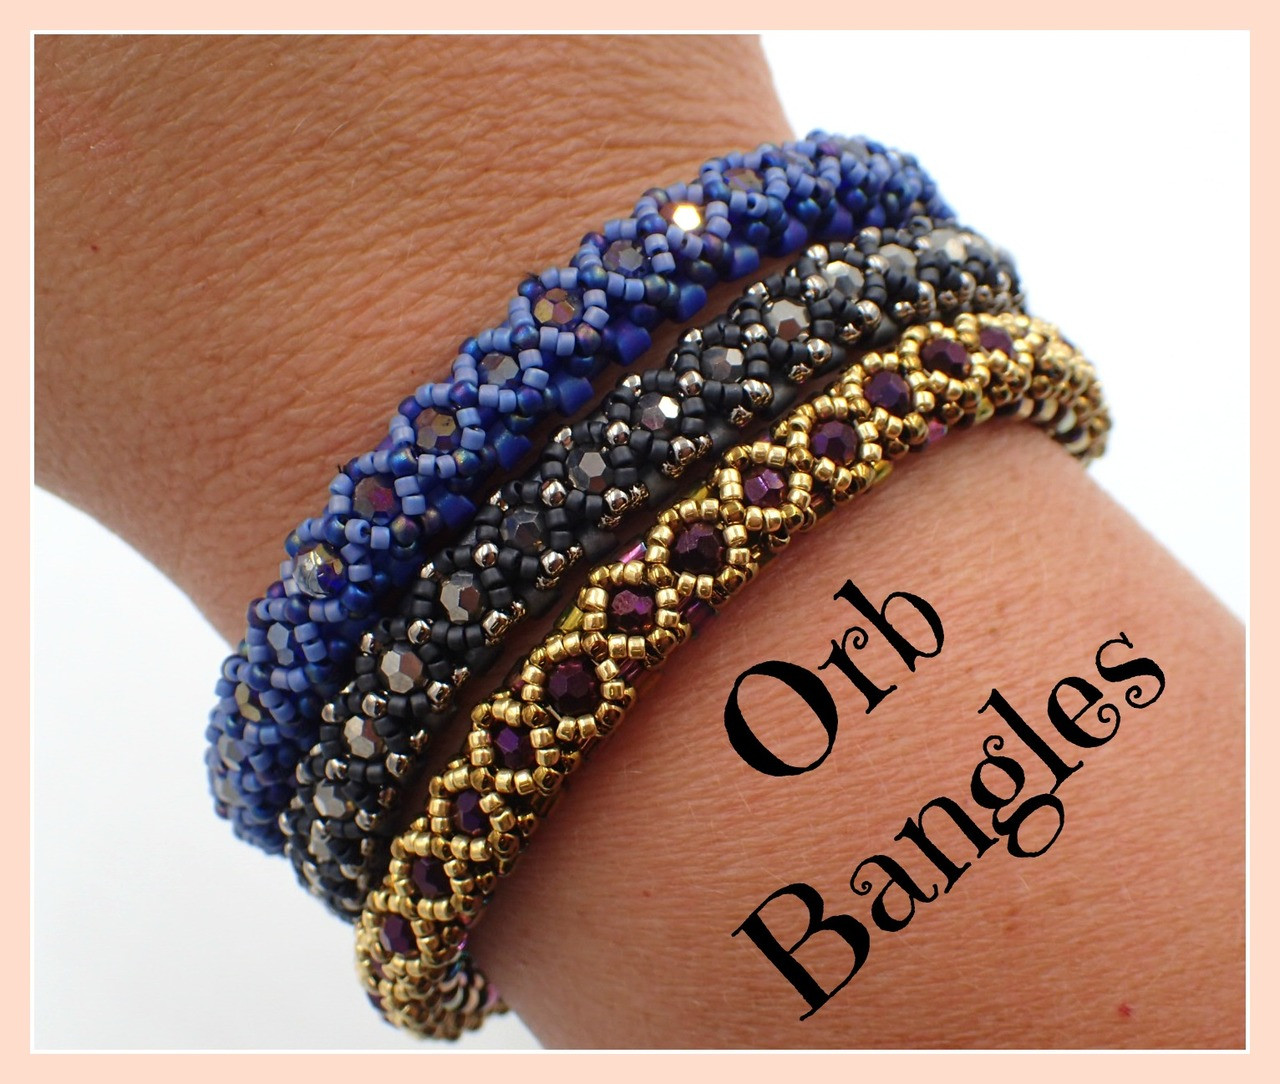 Orb Brangle Bracelet Tutorial - INSTANT DOWNLOAD